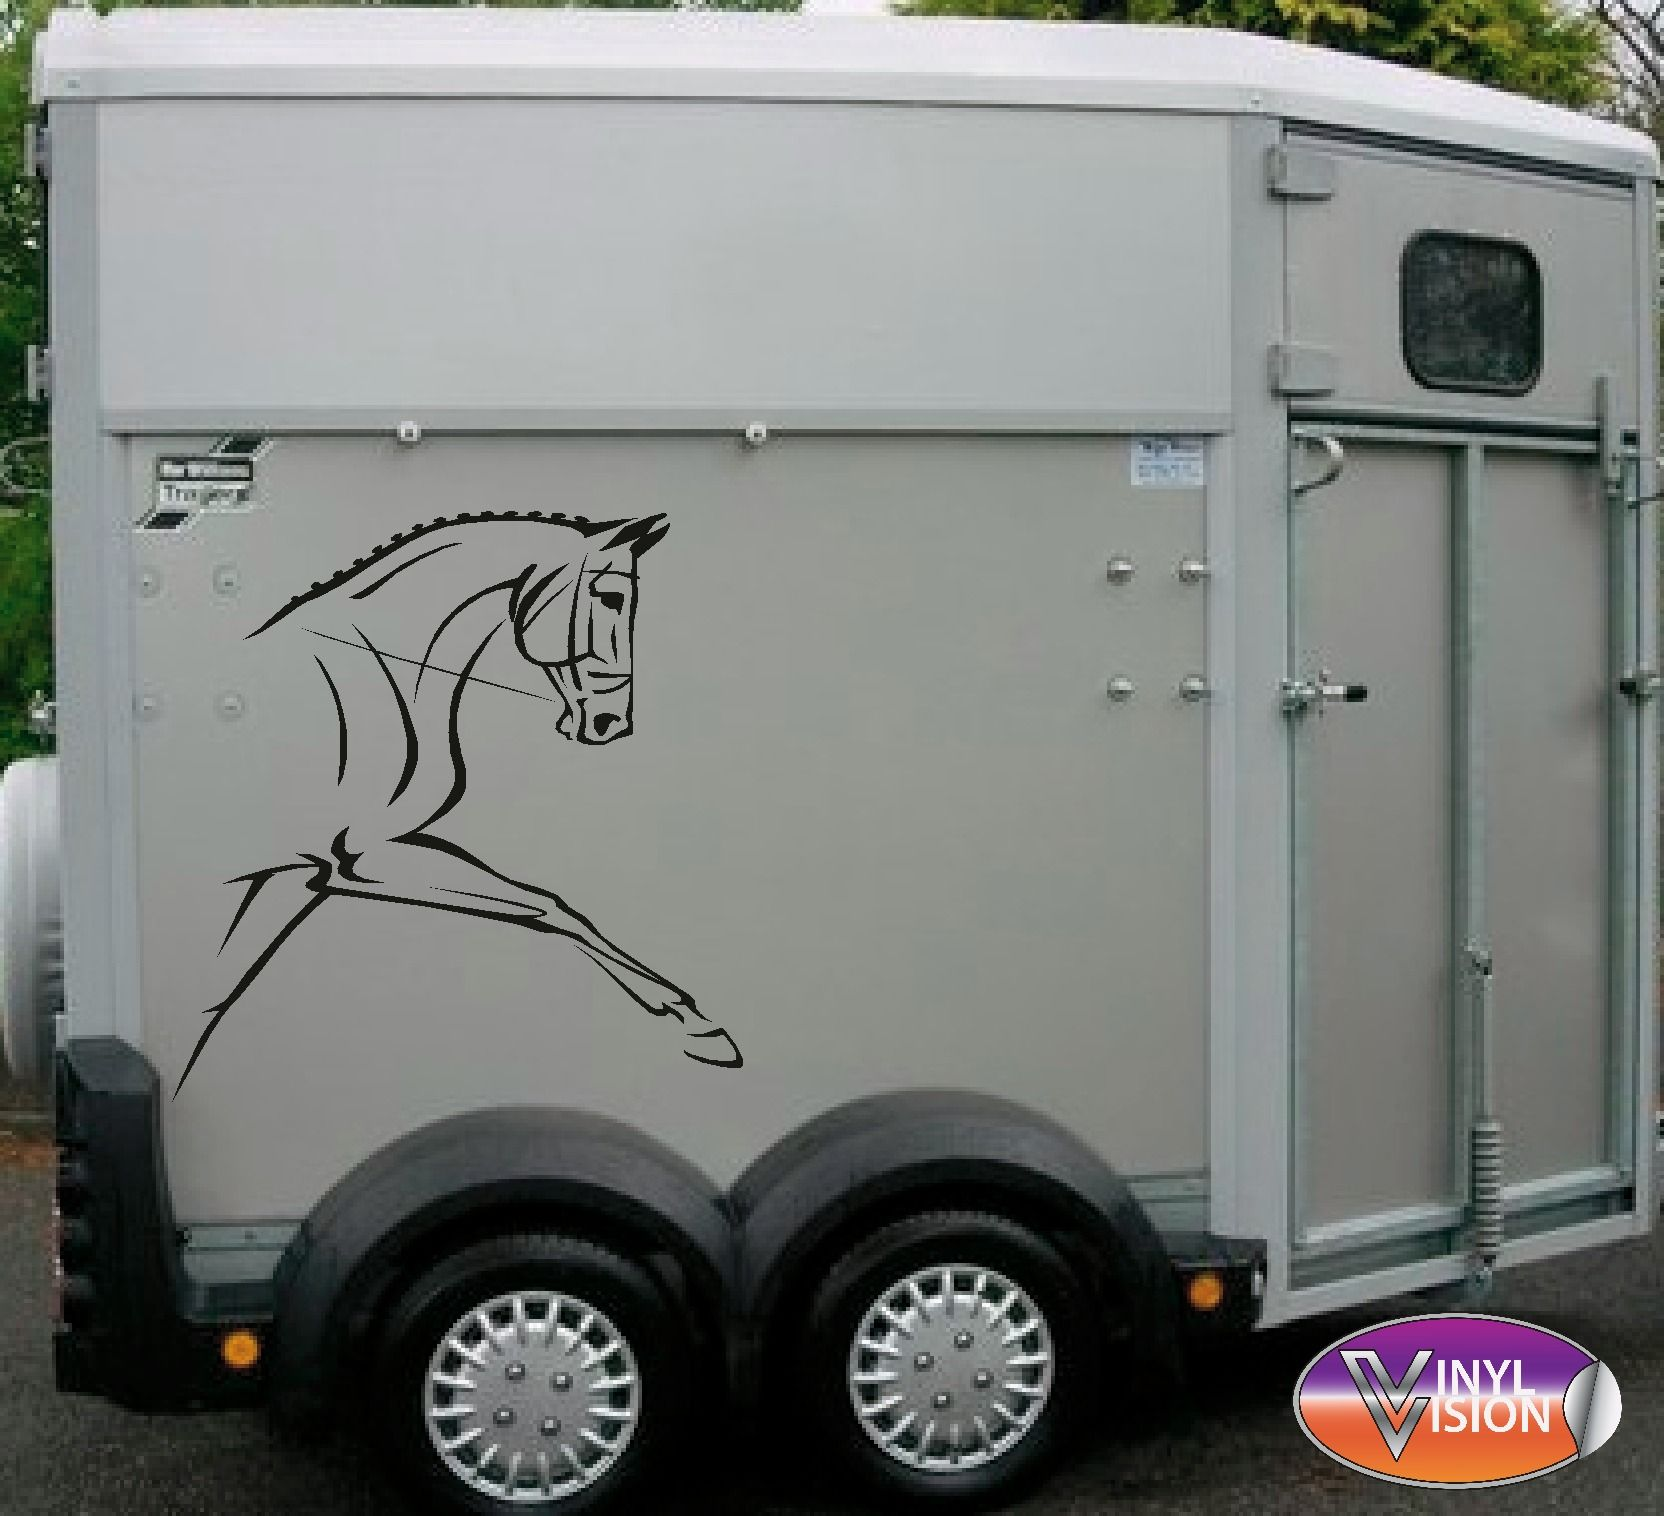 Equestrian Dressage Horse Trailer Or Lorry Decal Stickers Www Vinylvision Co Uk Dressage Horses Horses Horse Trailer [ 1516 x 1664 Pixel ]